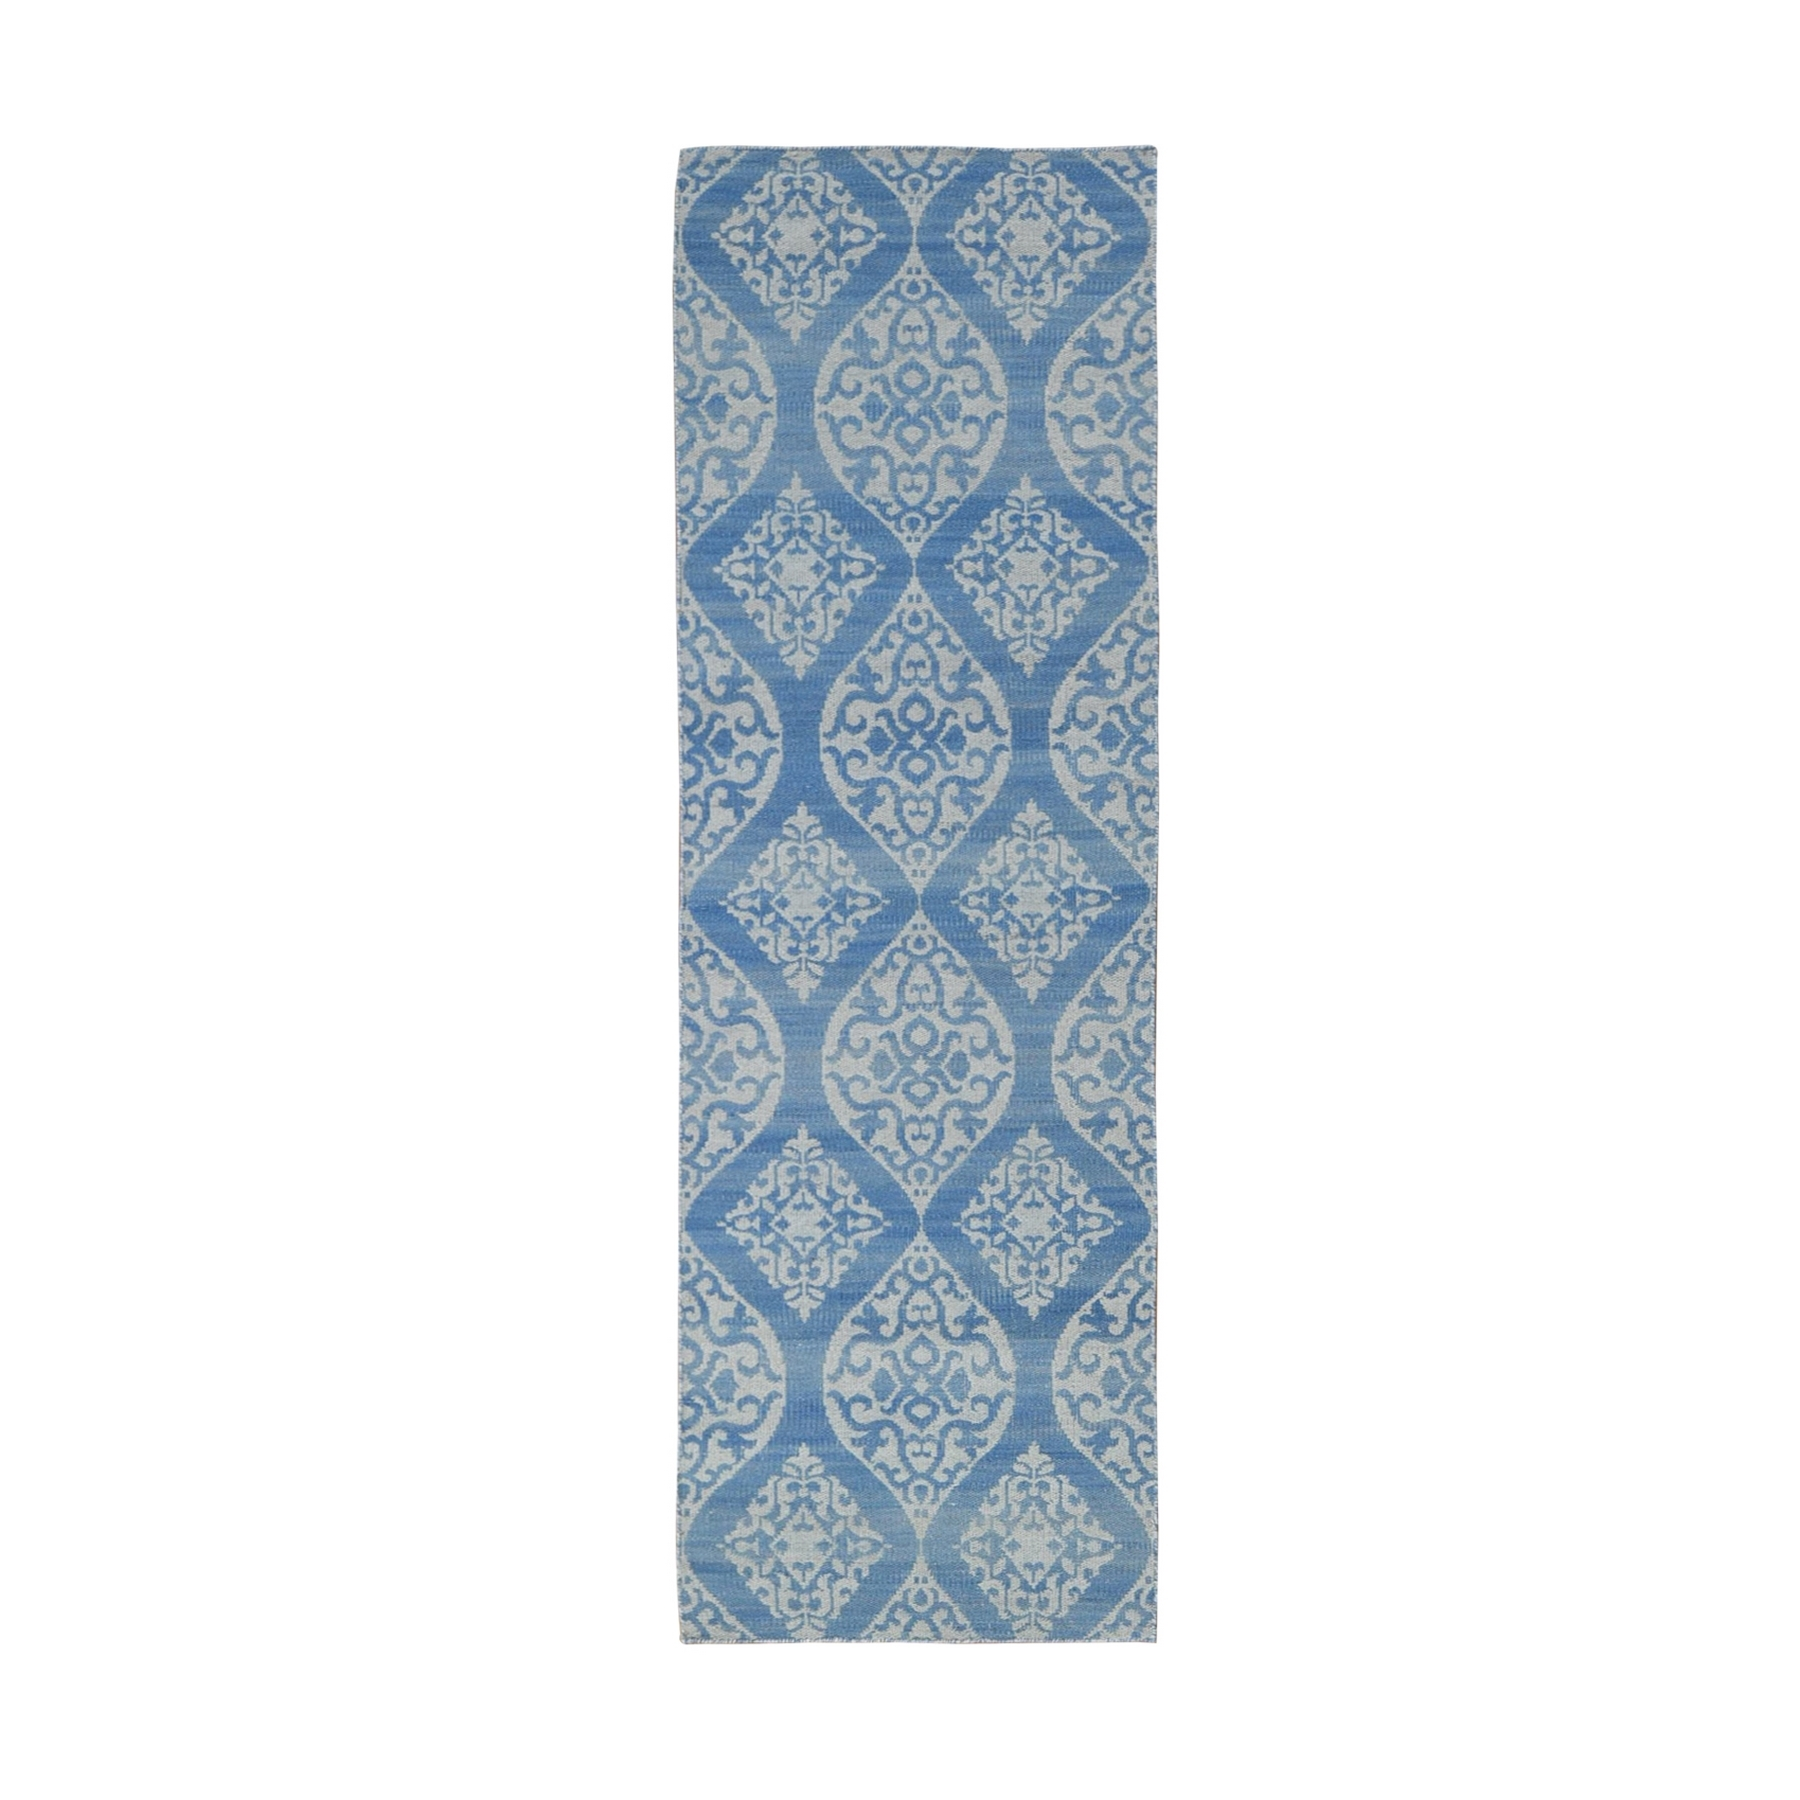 Fine Kilim Collection Hand Woven Blue Rug No: 1132198